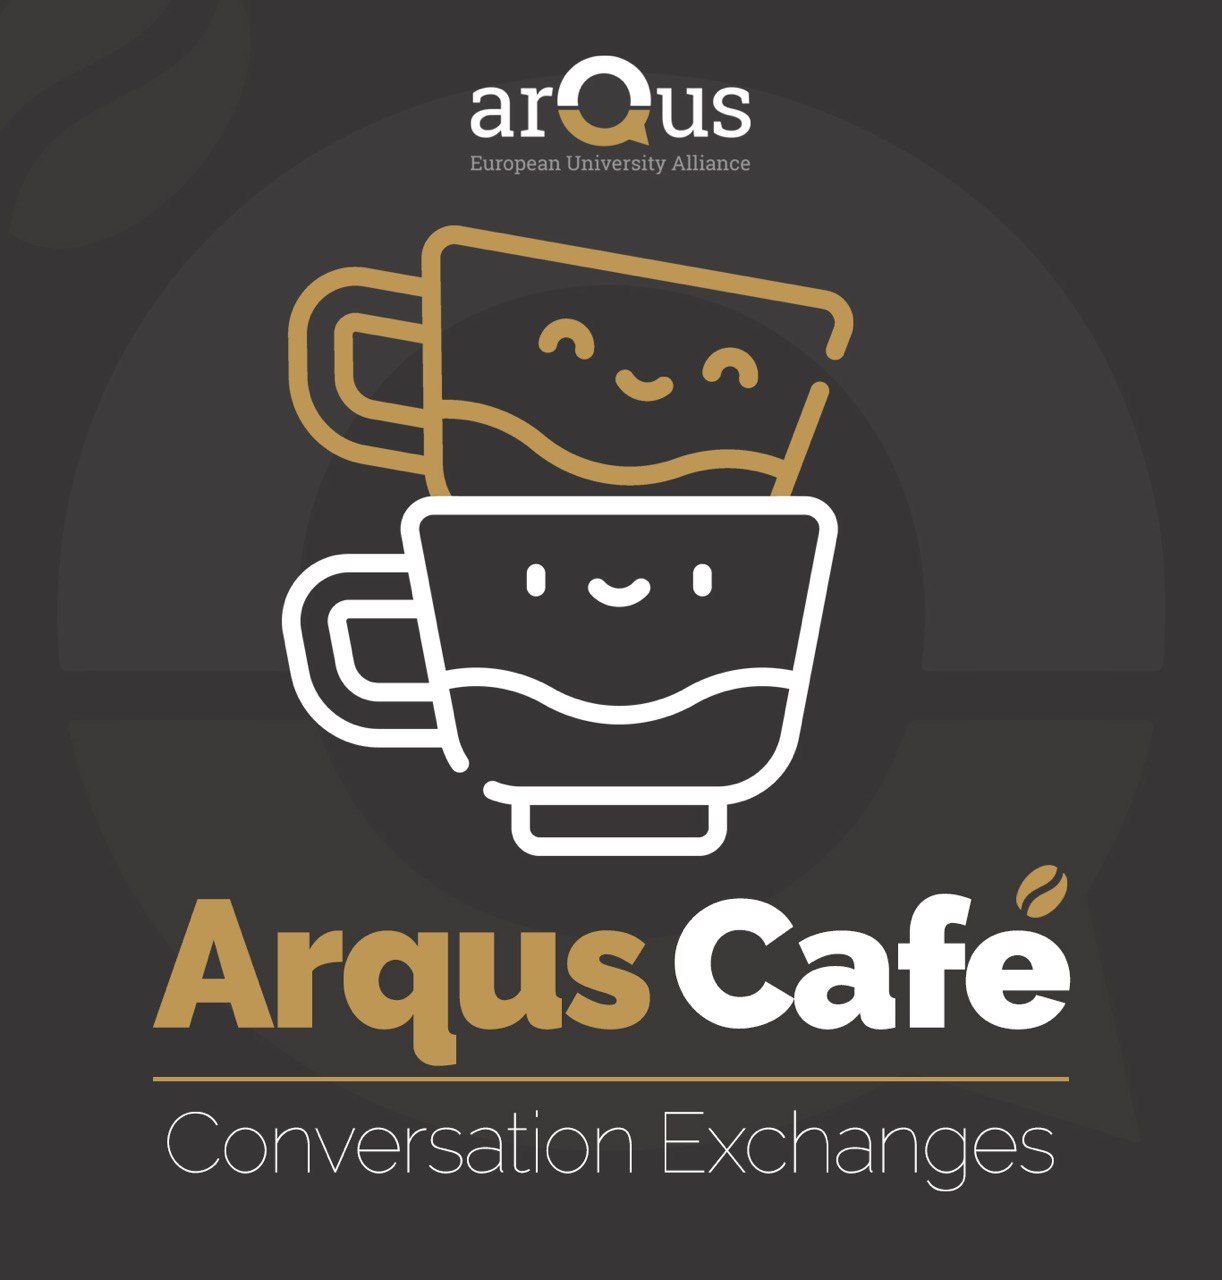 Poster of the Arqus Café with 2 cups smiling.